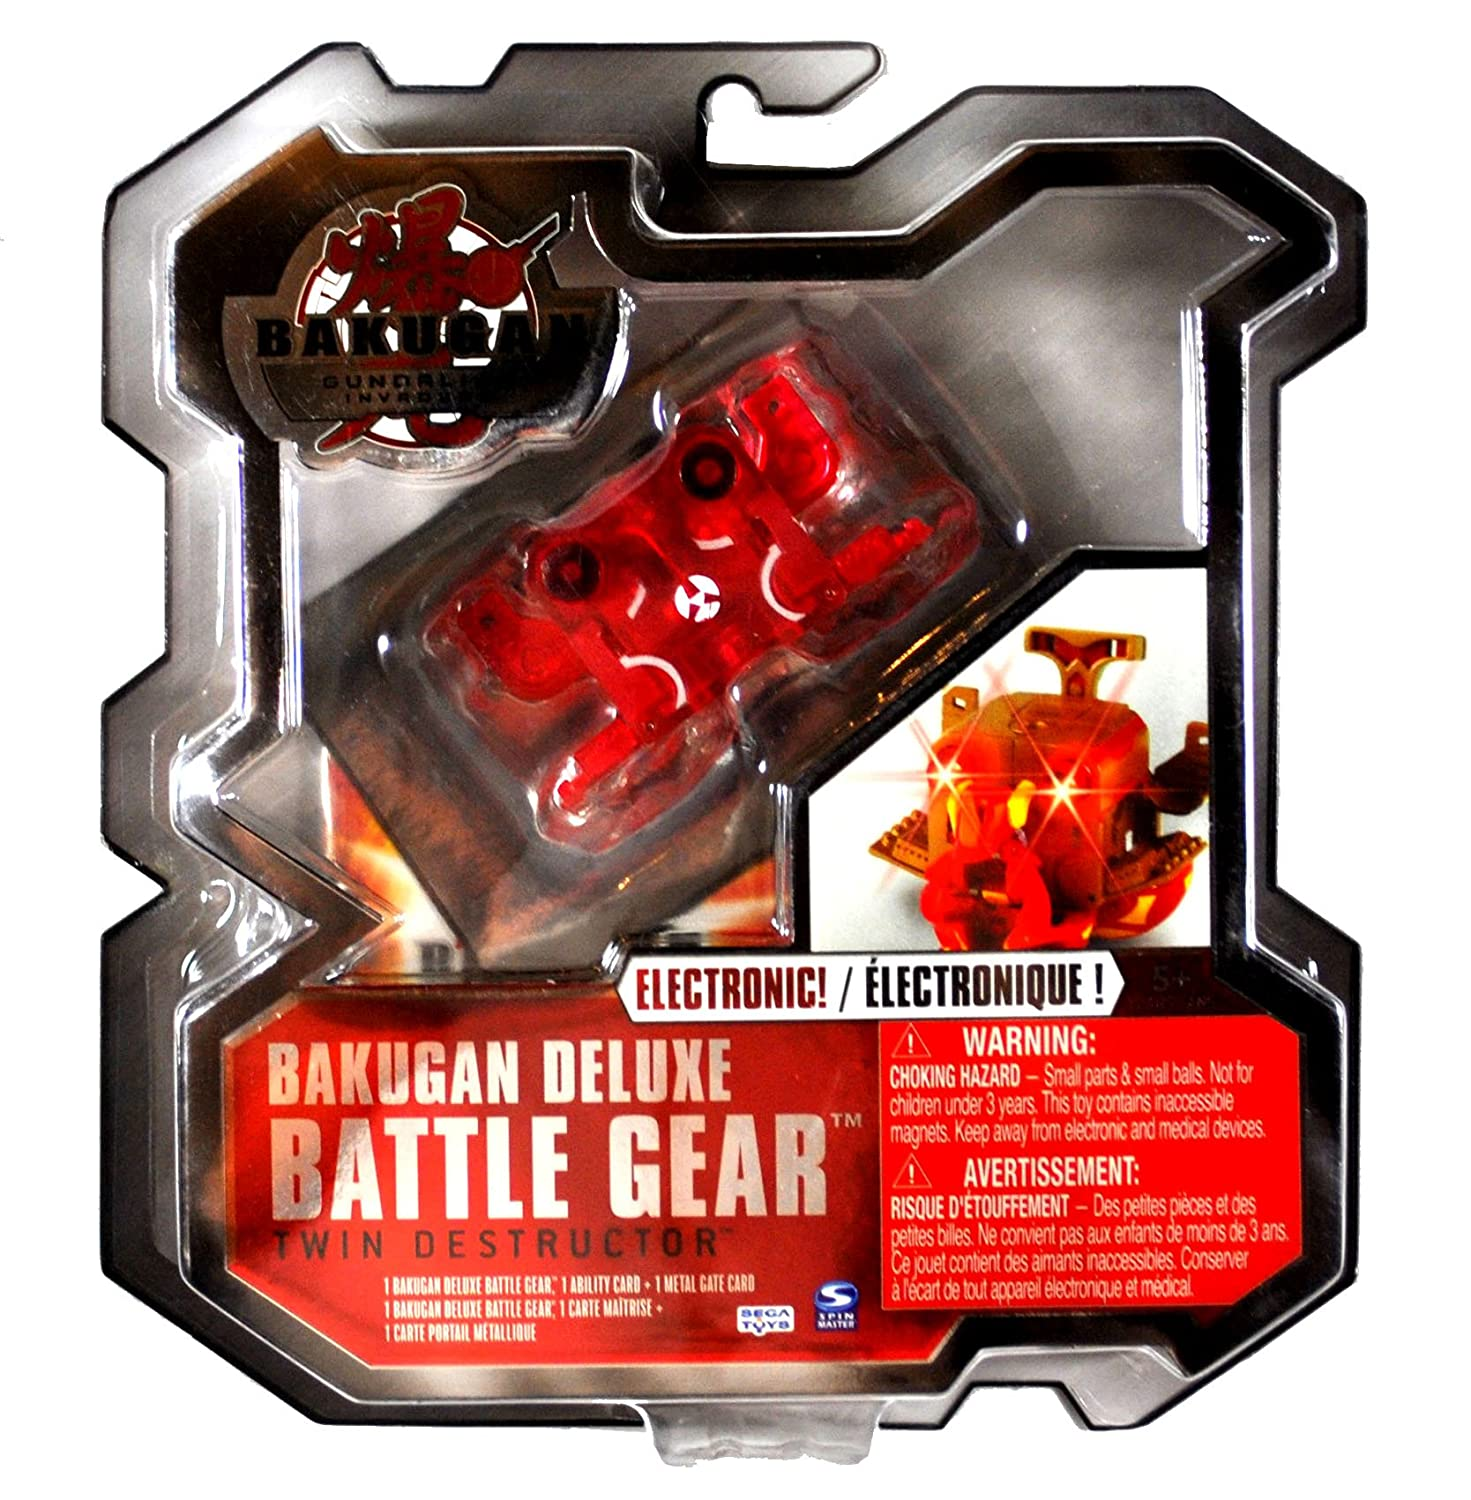 Spin Master Year 2010 Bakugan Gundalian Invaders Deluxe Electronic Battle Gear Set - Double Cannon TWIN DESTRUCTOR (Silver - 100Gs) with 1 Ability Card and 1 Metal Gate Card B004RZHCNC